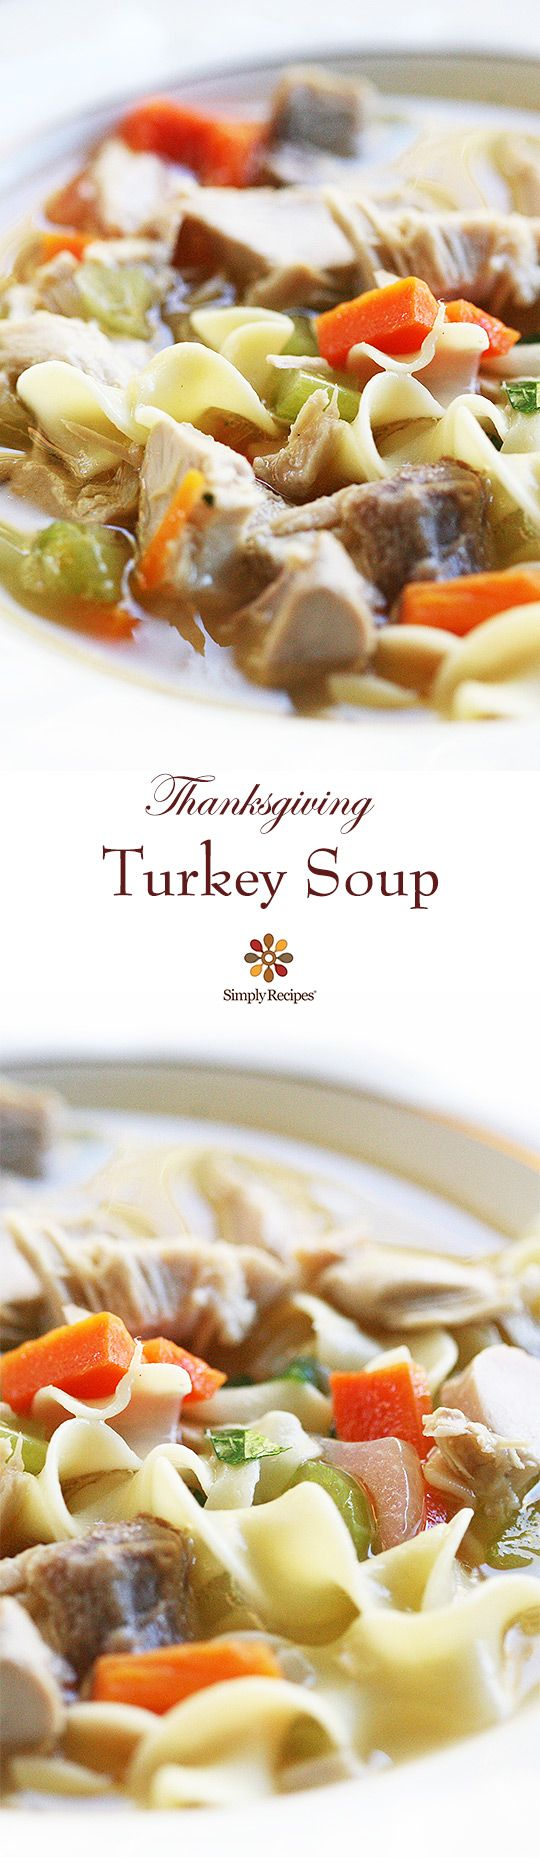 Classic turkey soup recipe! Every Thanksgiving my mother takes what's left of the turkey carcass and makes a delicious turkey soup that we enjoy for days. On SimplyRecipes.com